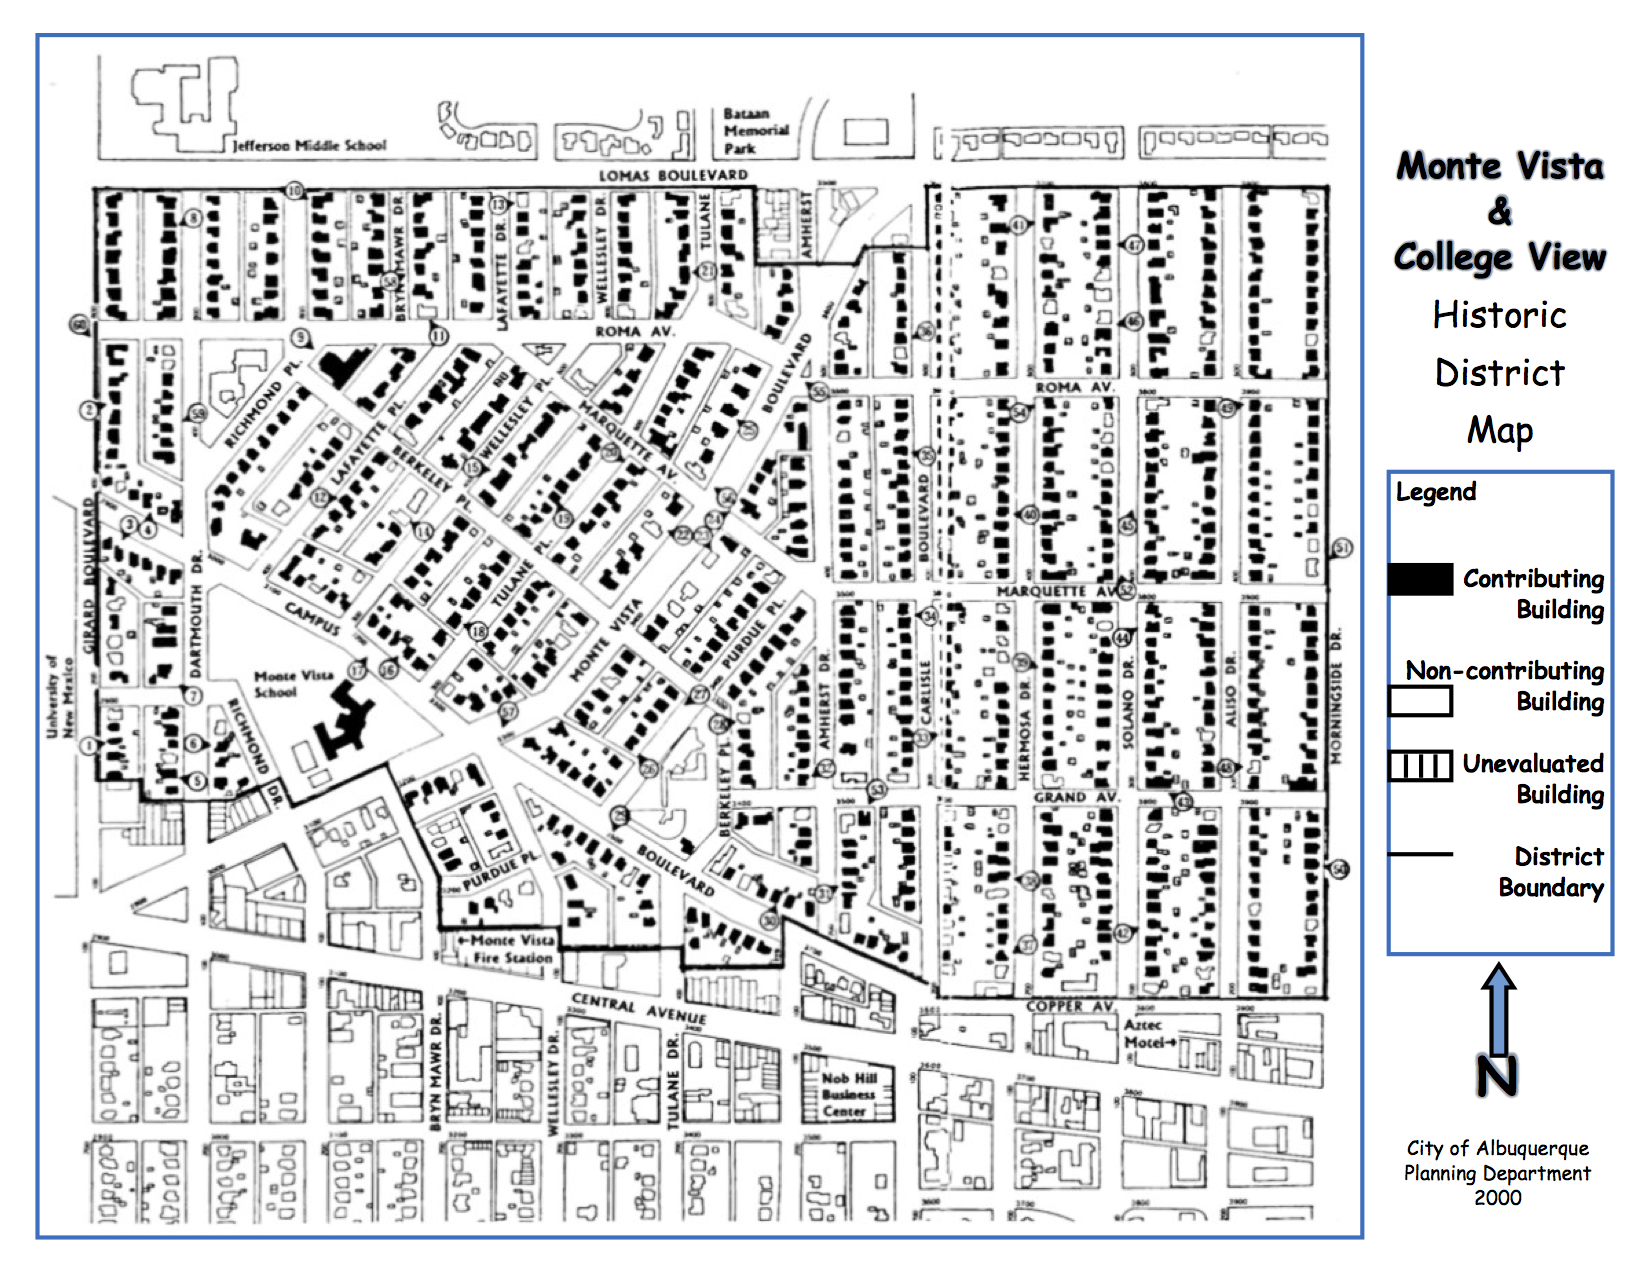 Monte Vista & College View Historic District Map